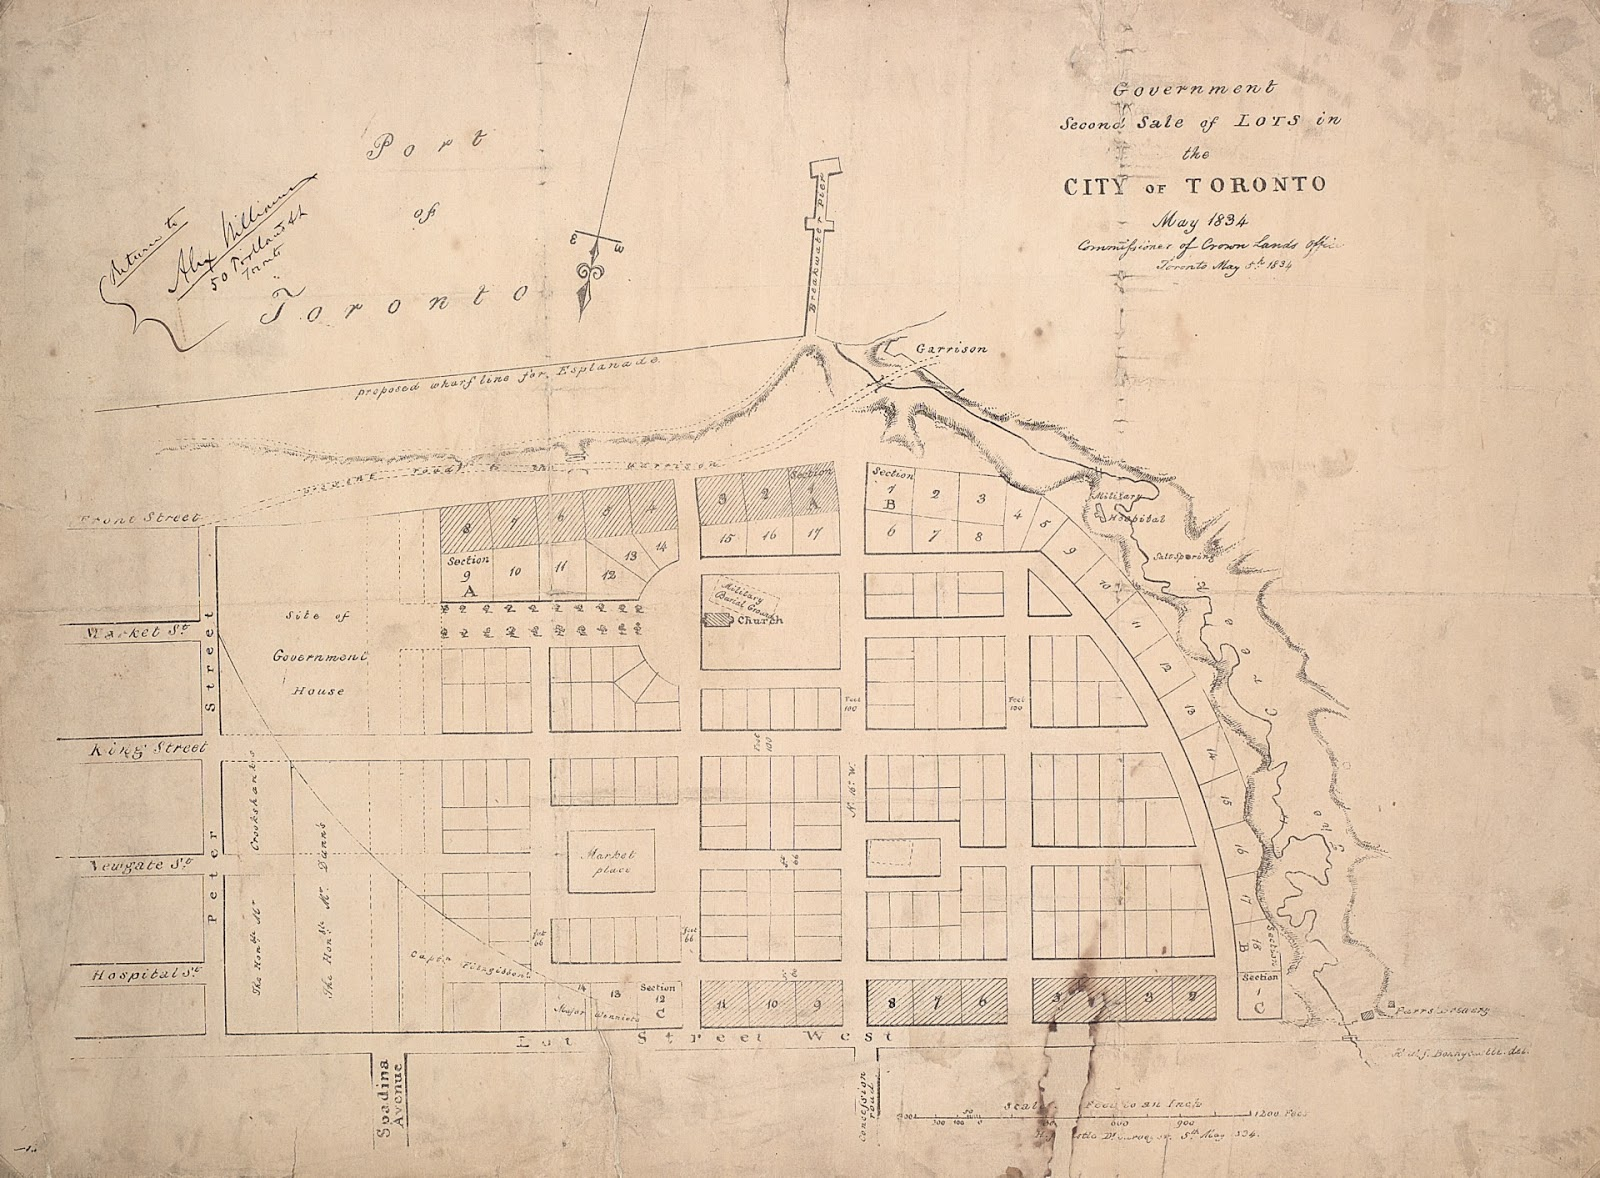 Map: Government Second Sale of Lots in the City of Toronto May 1834. Commissioner of Crown Lands Office Toronto May 5th 1834. H.J. Castle.